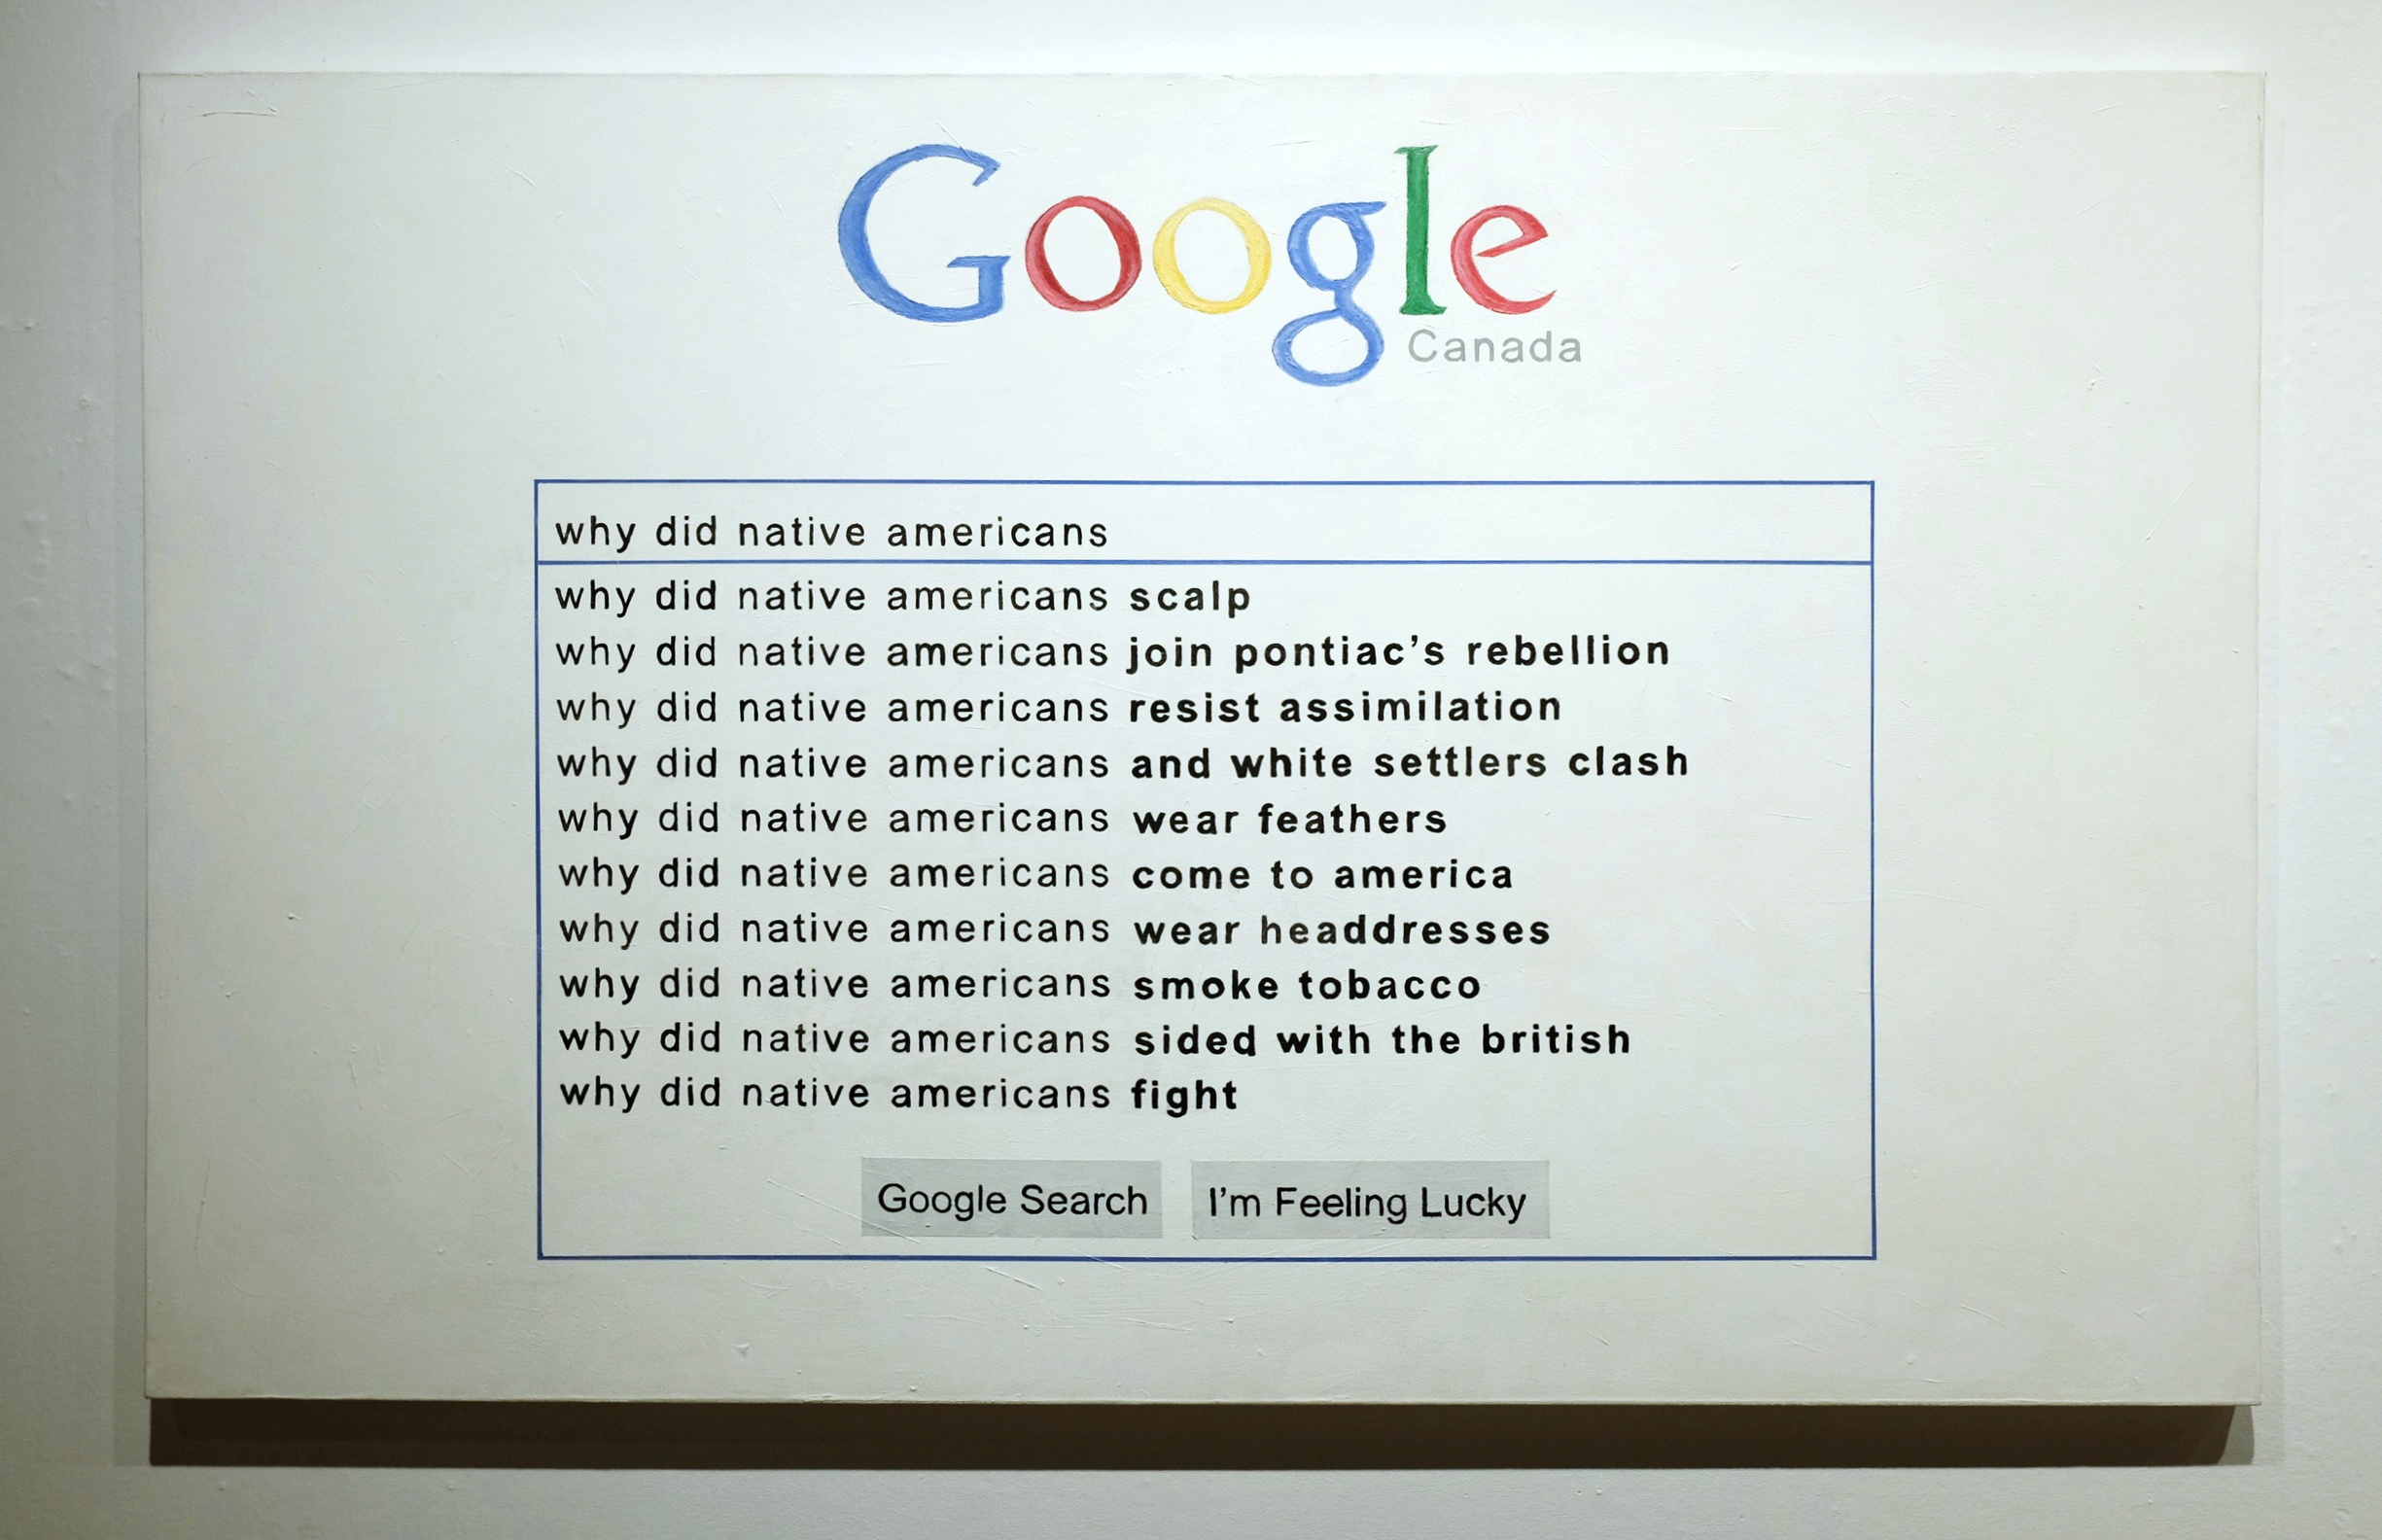 Why did native americans